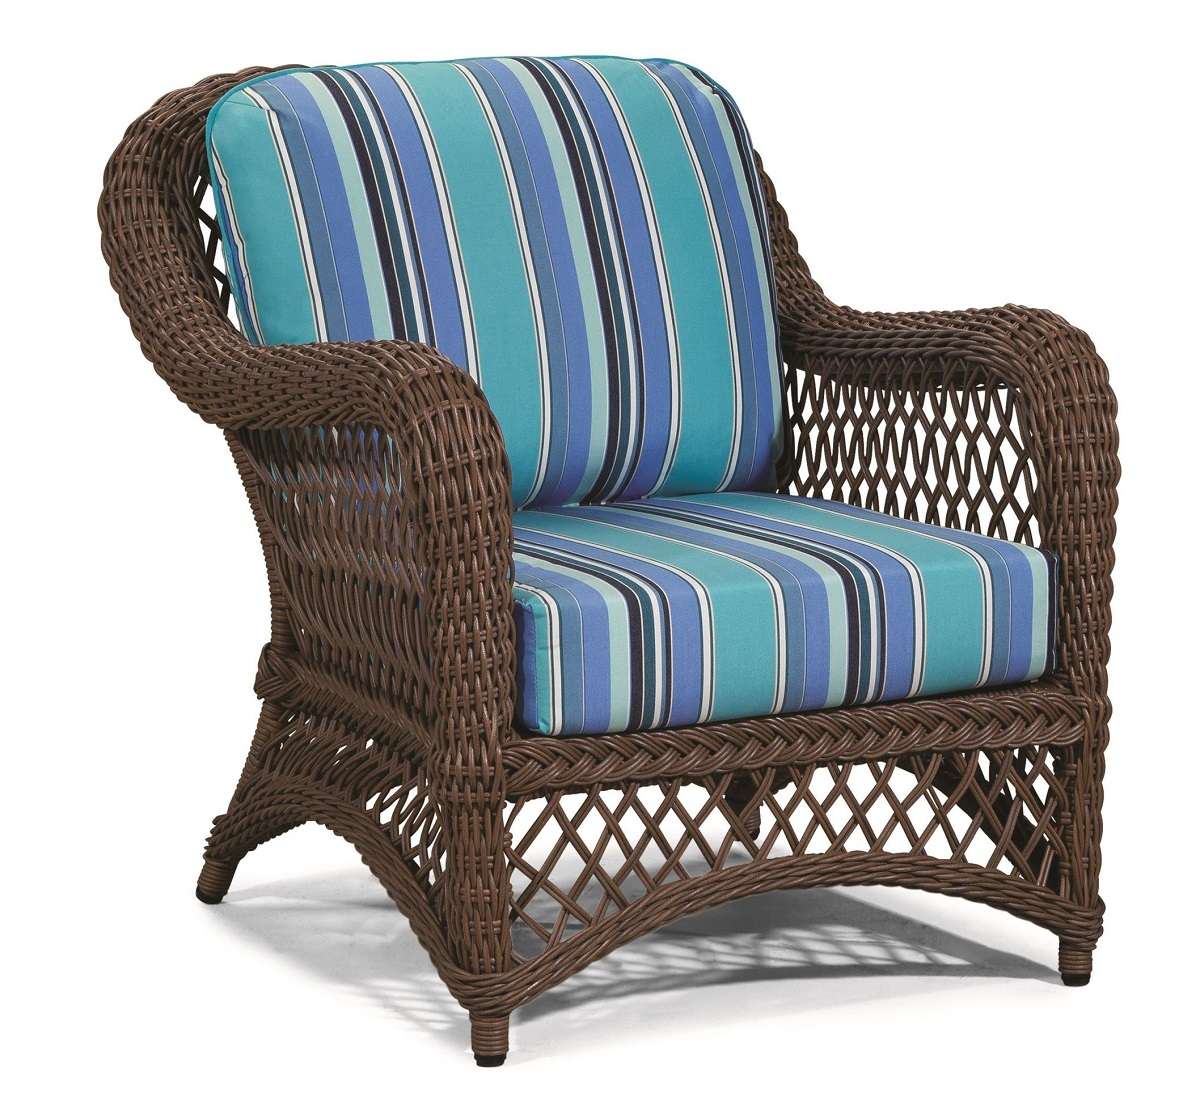 Wicker Patio Chair Outdoor Wicker Chair Savannah